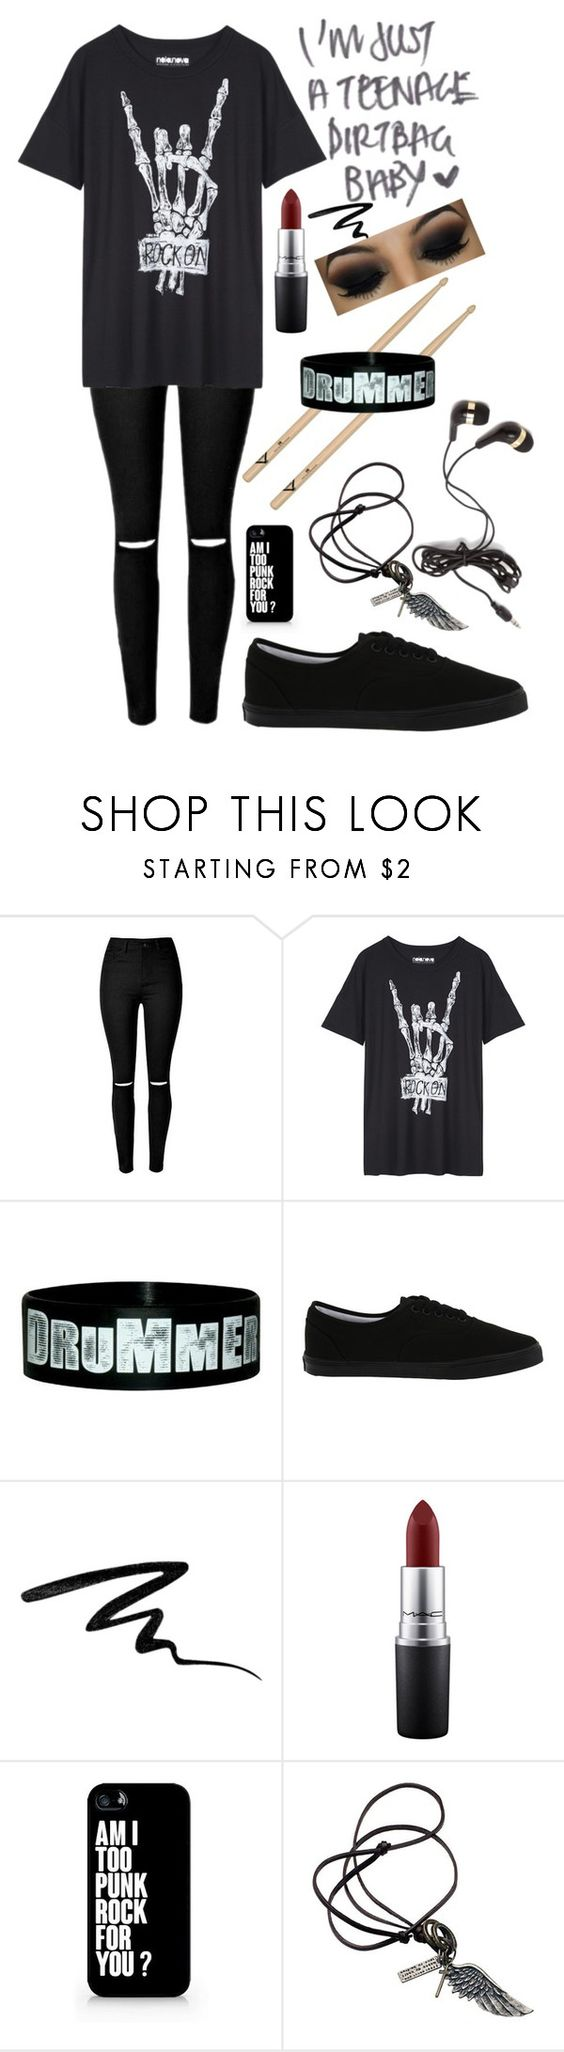 """Untitled #189"" by choice-to-be ❤ liked on Polyvore featuring Vans, Eyeko, MAC Cosmetics, Samsung and Forever 21"